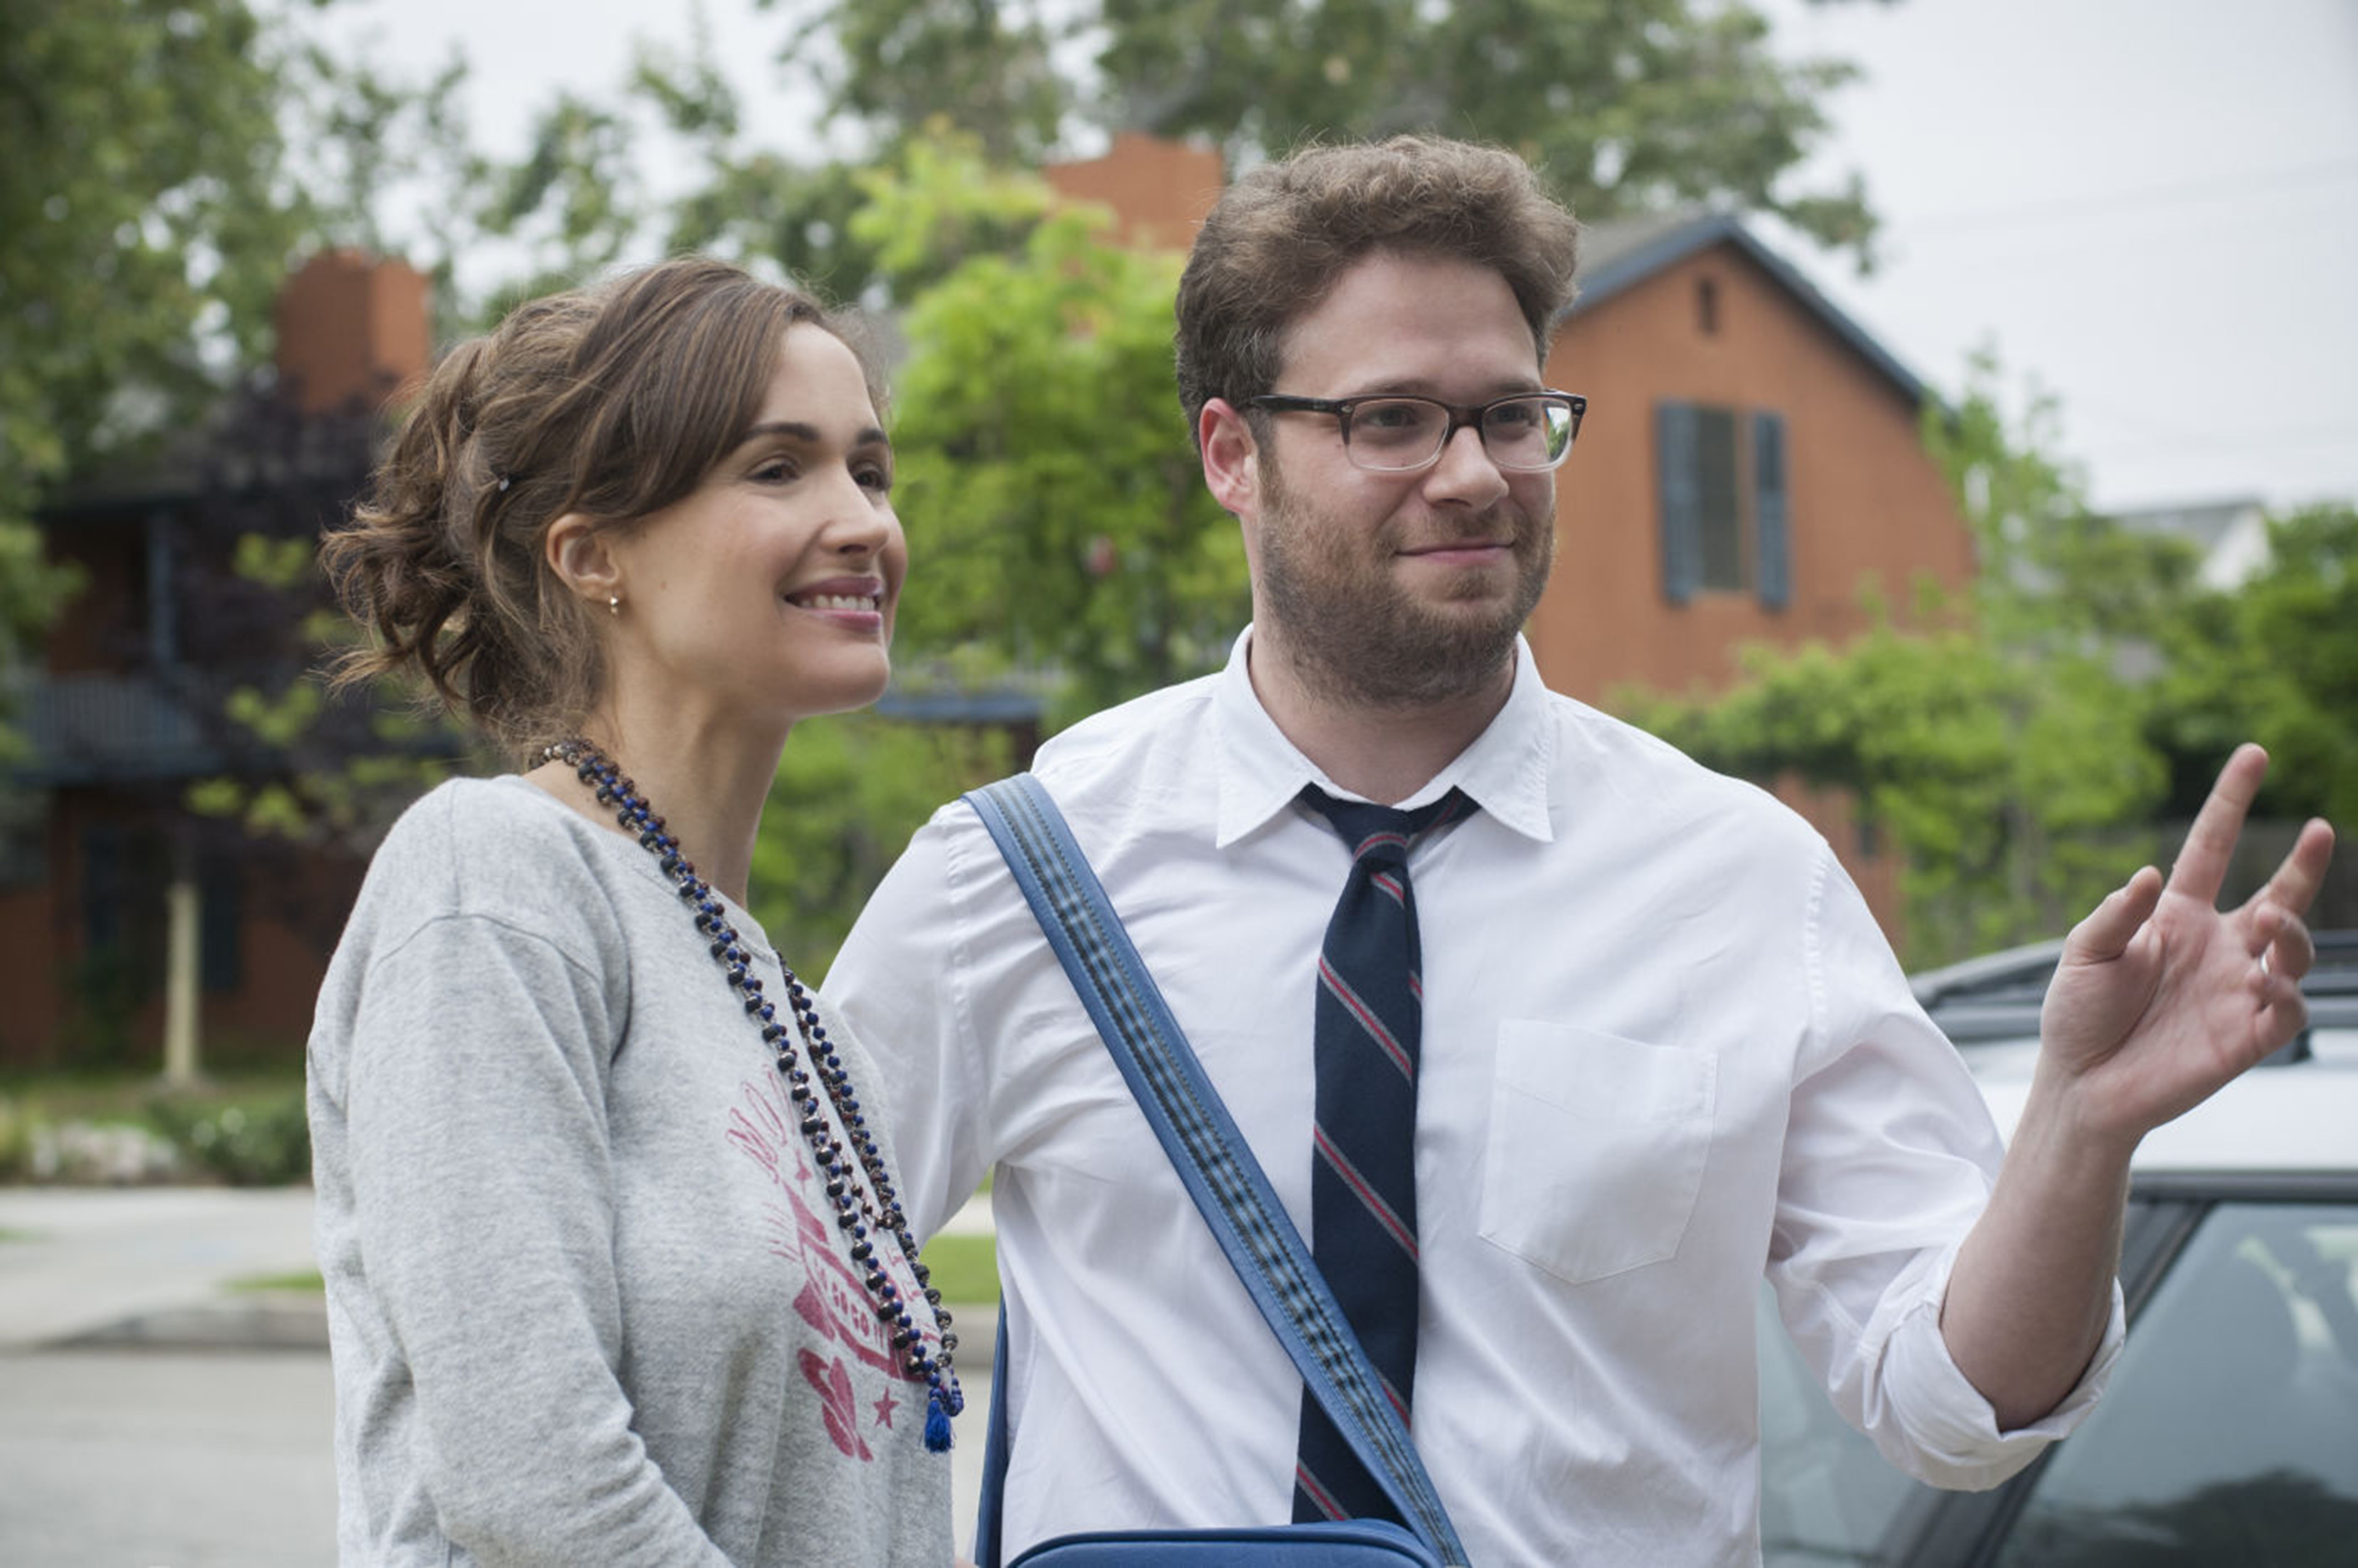 Rose Byrne on why she and Seth Rogen make such a great on screen pair: